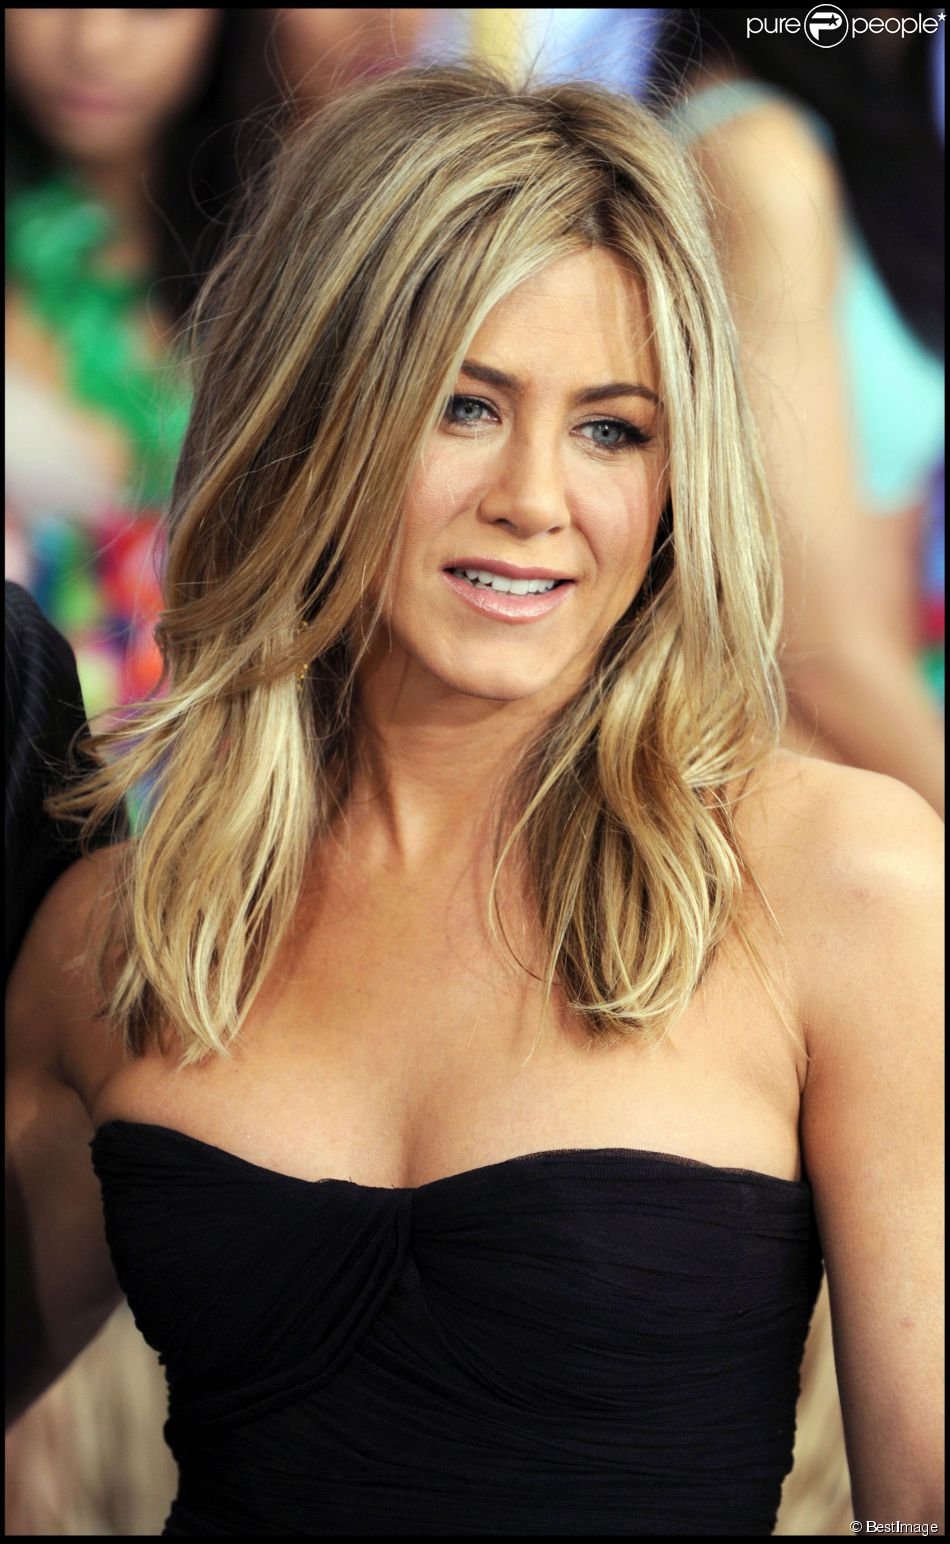 Jennifer aniston comment obtenir sa chevelure de r ve purepeople - Coiffure jennifer aniston ...